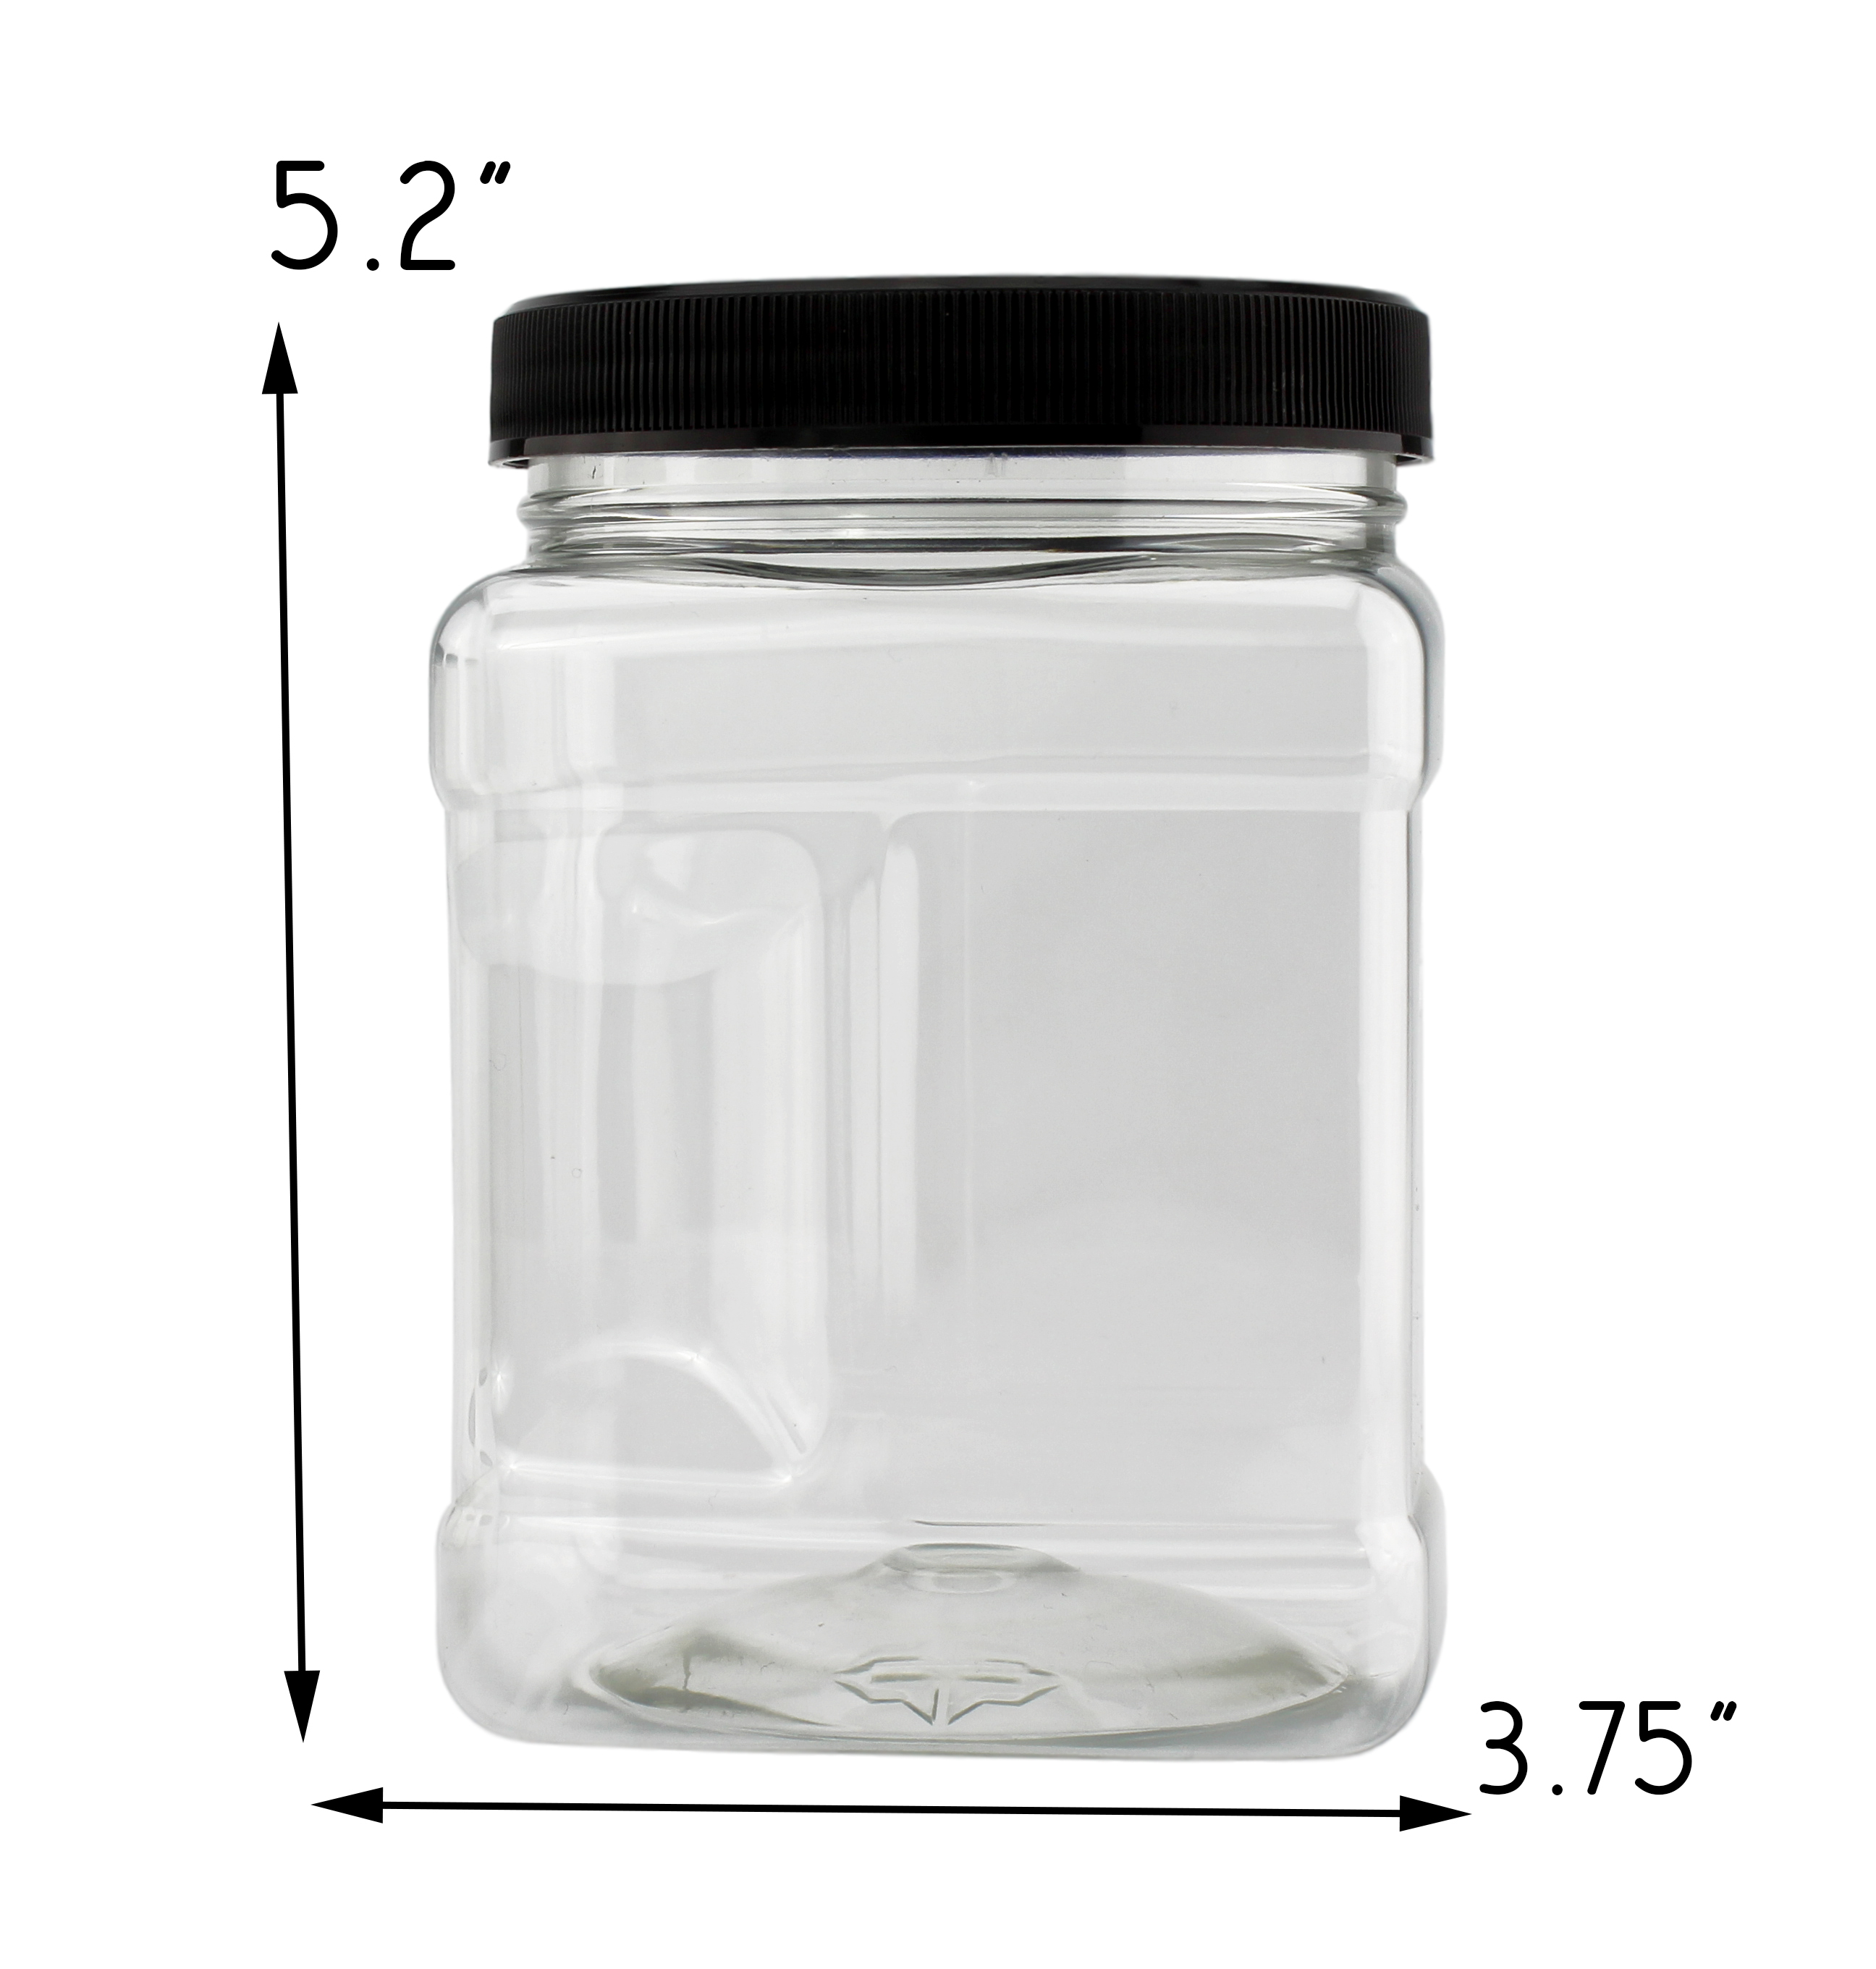 B078SF8L4D - 32-Ounce Square Plastic Jars (4-Pack) 4